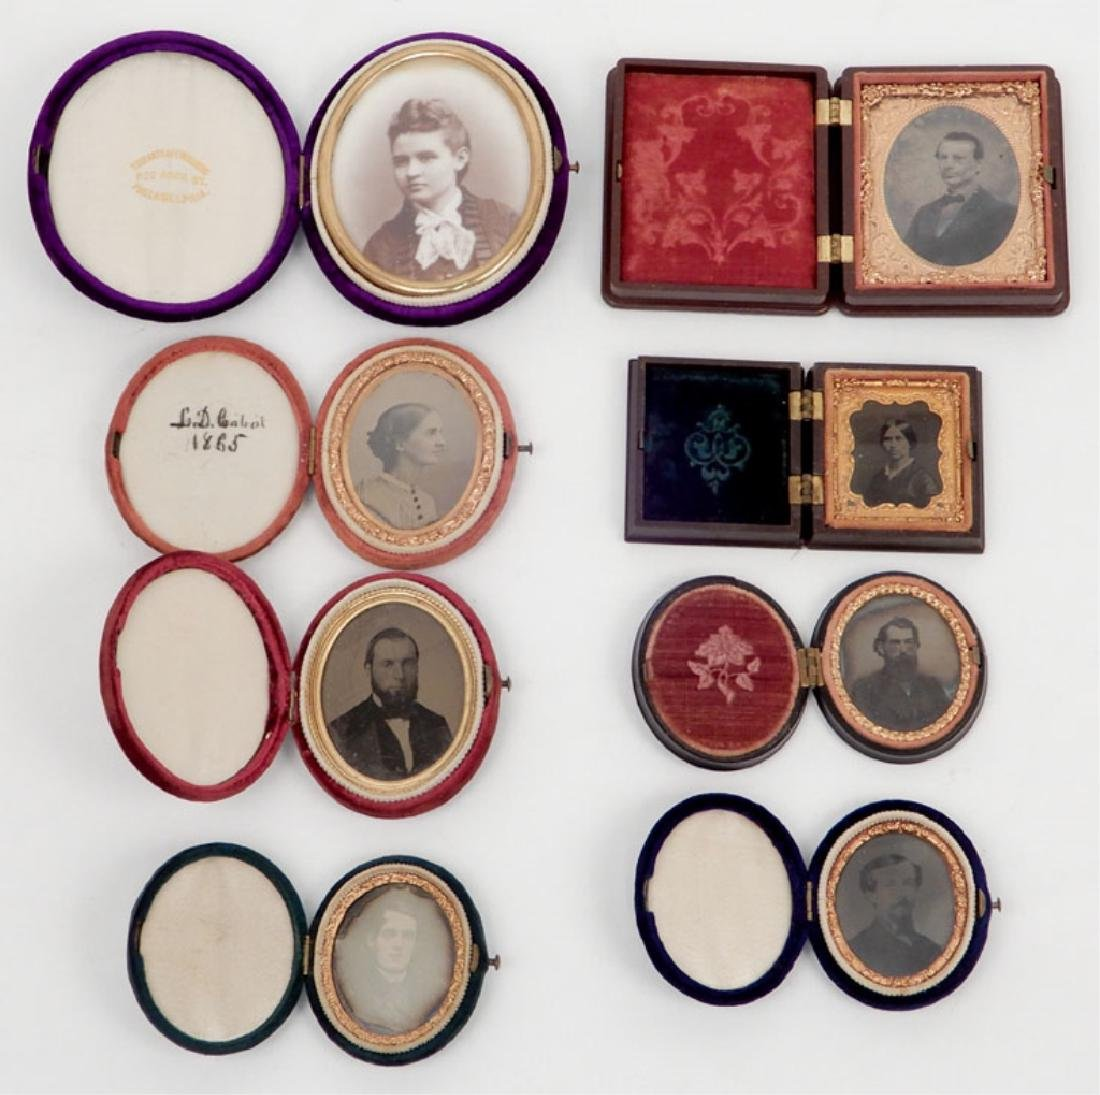 Grouping of daguerreotypes, ambrotypes, tintypes and an